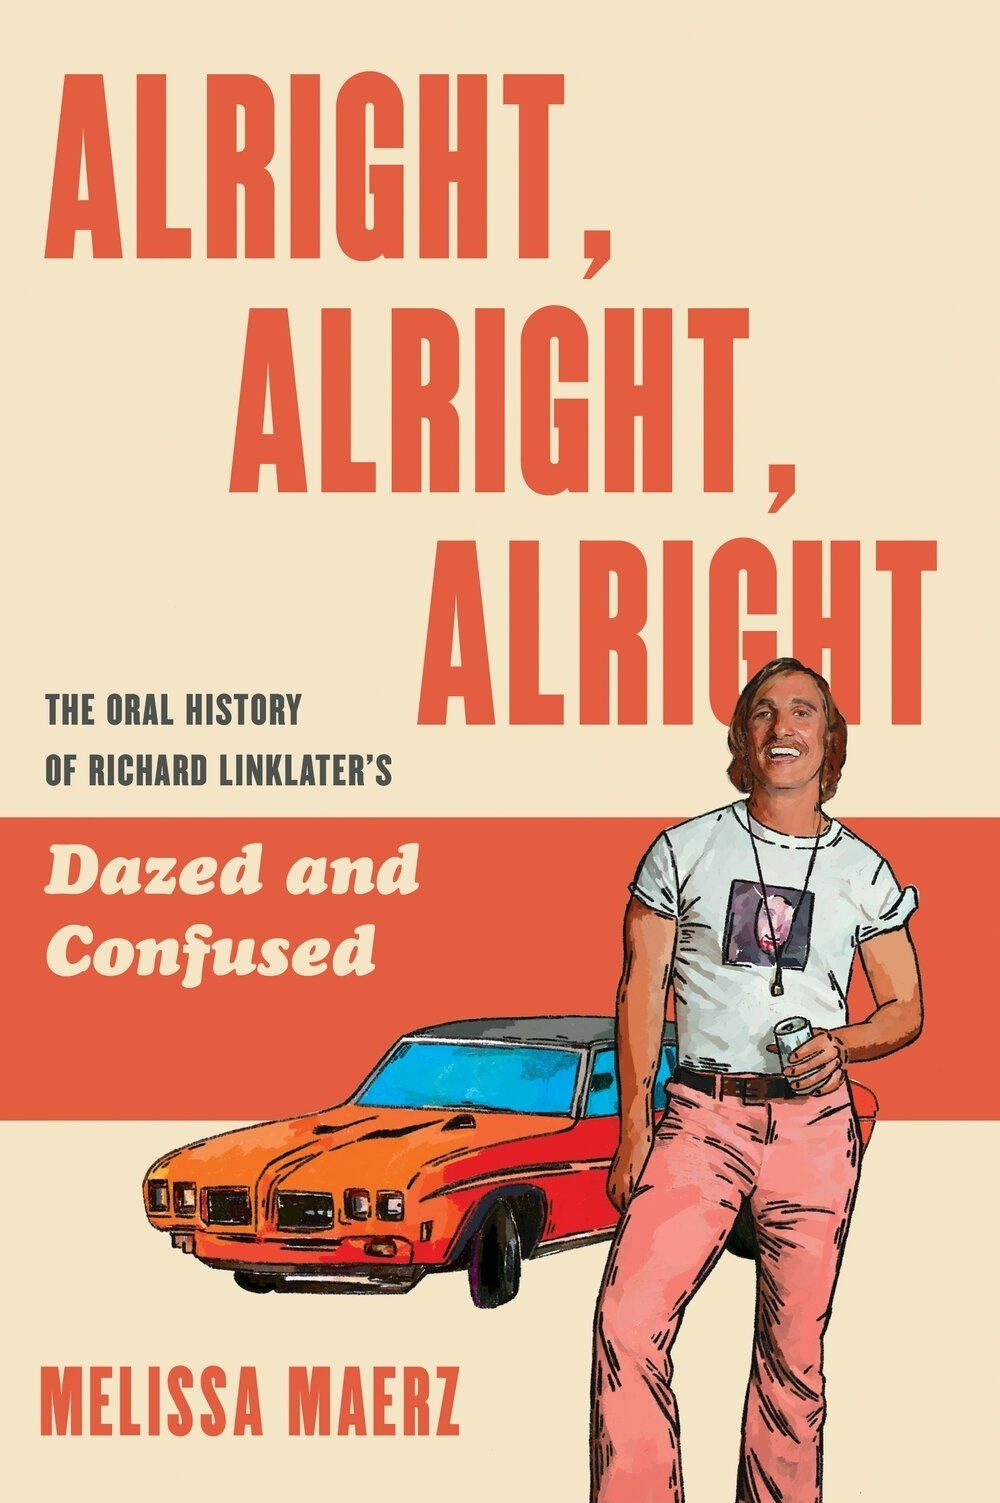 Alright, Alright, Alright: The Oral History of Richard Linklater's Dazed and Confused by Melissa Maerz